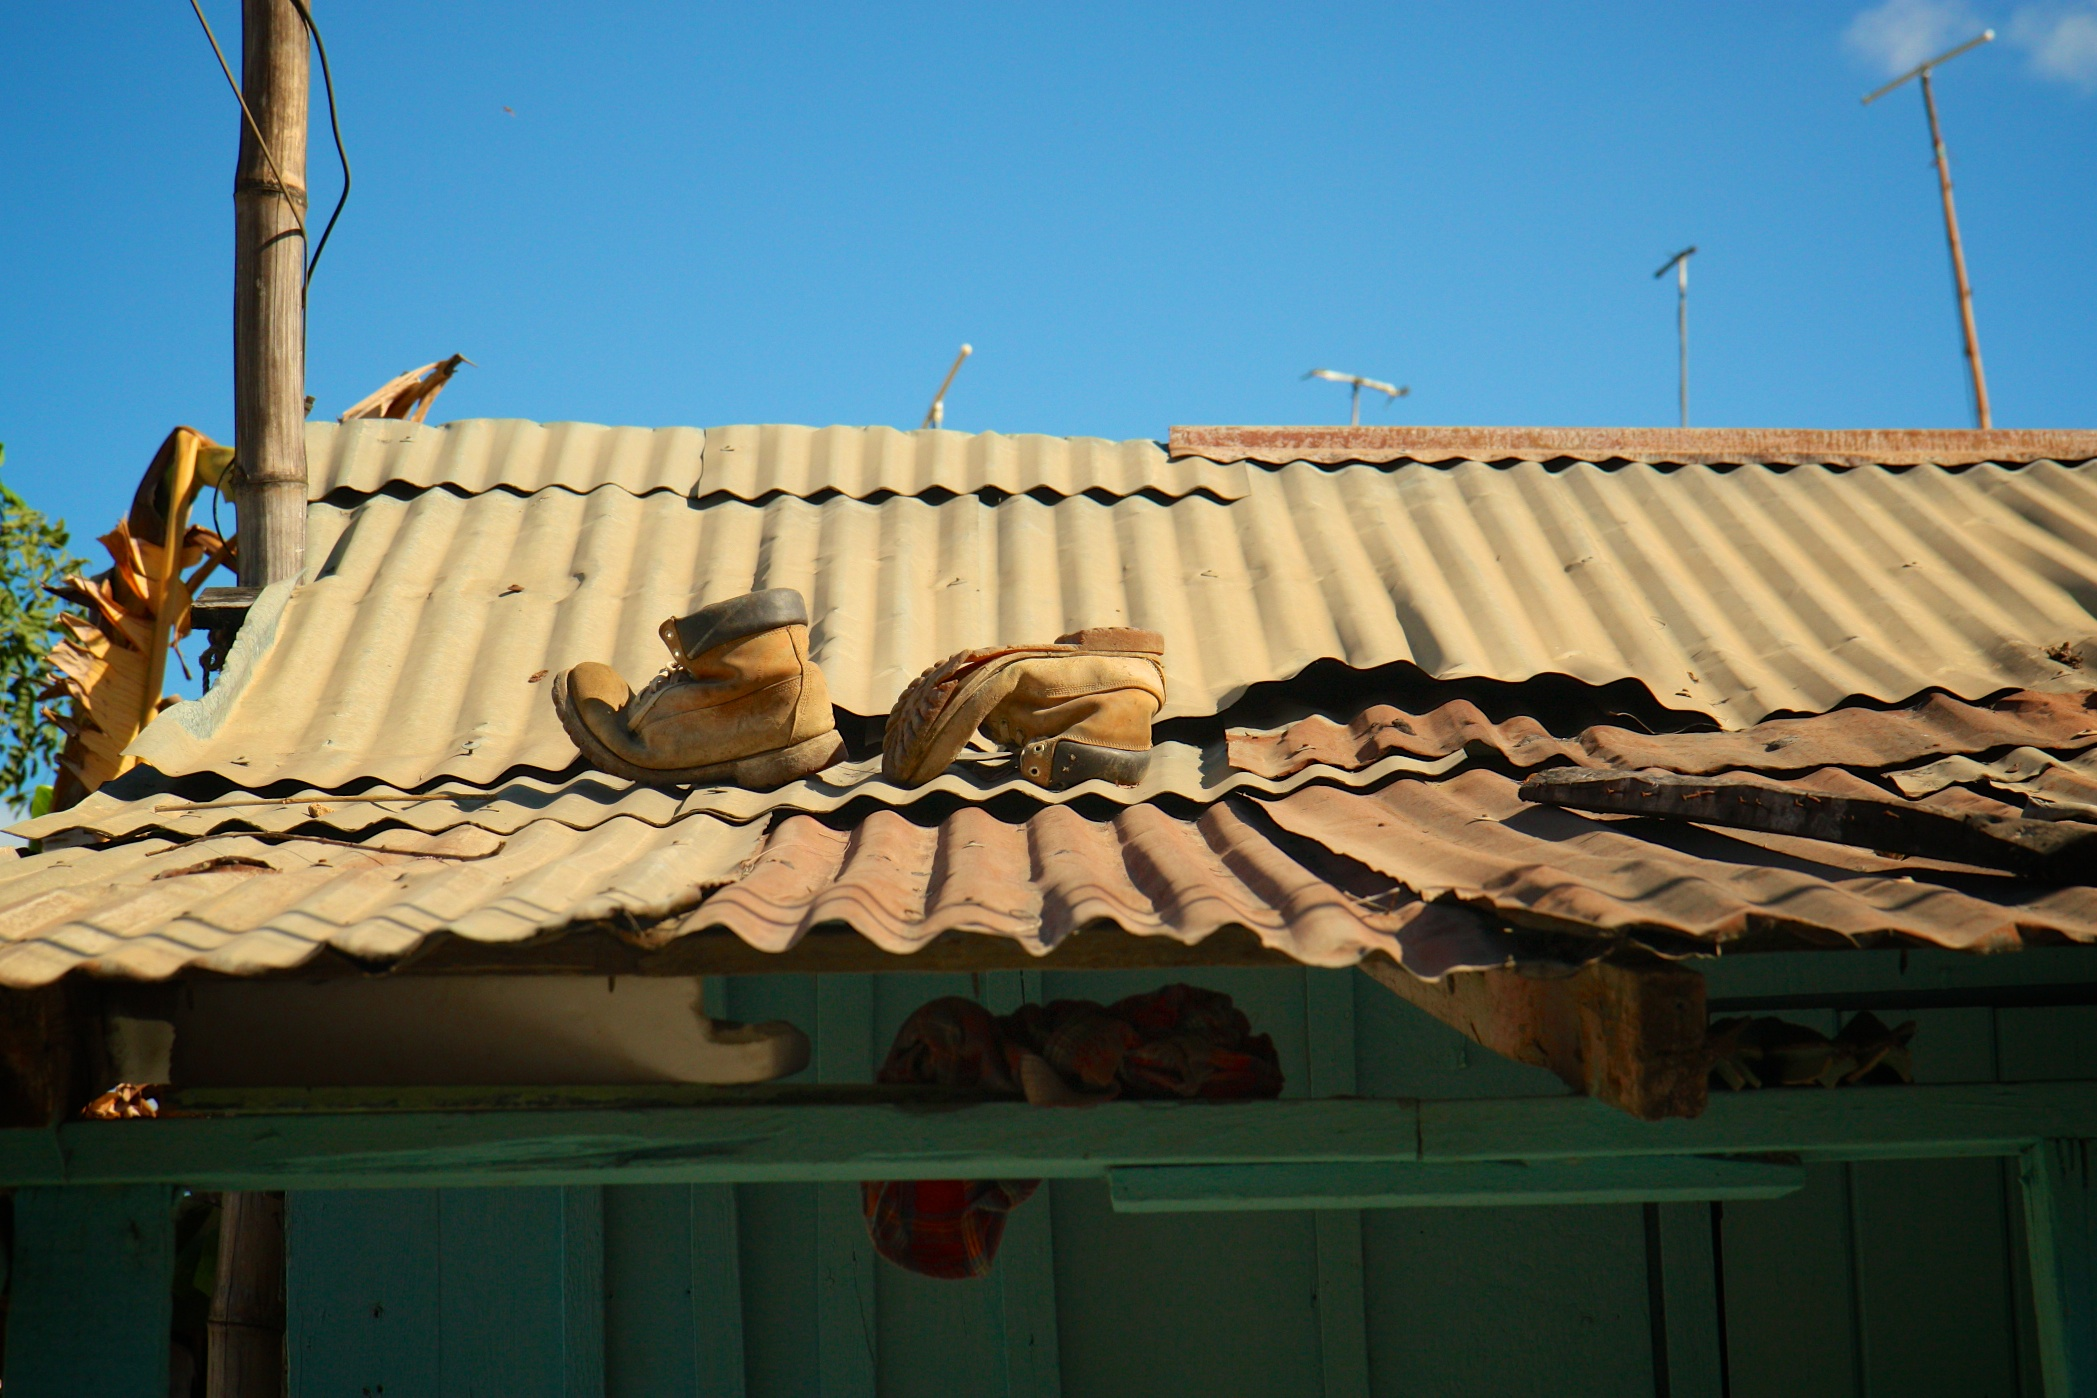 boots-on-a-roof_8553293784_o.jpg